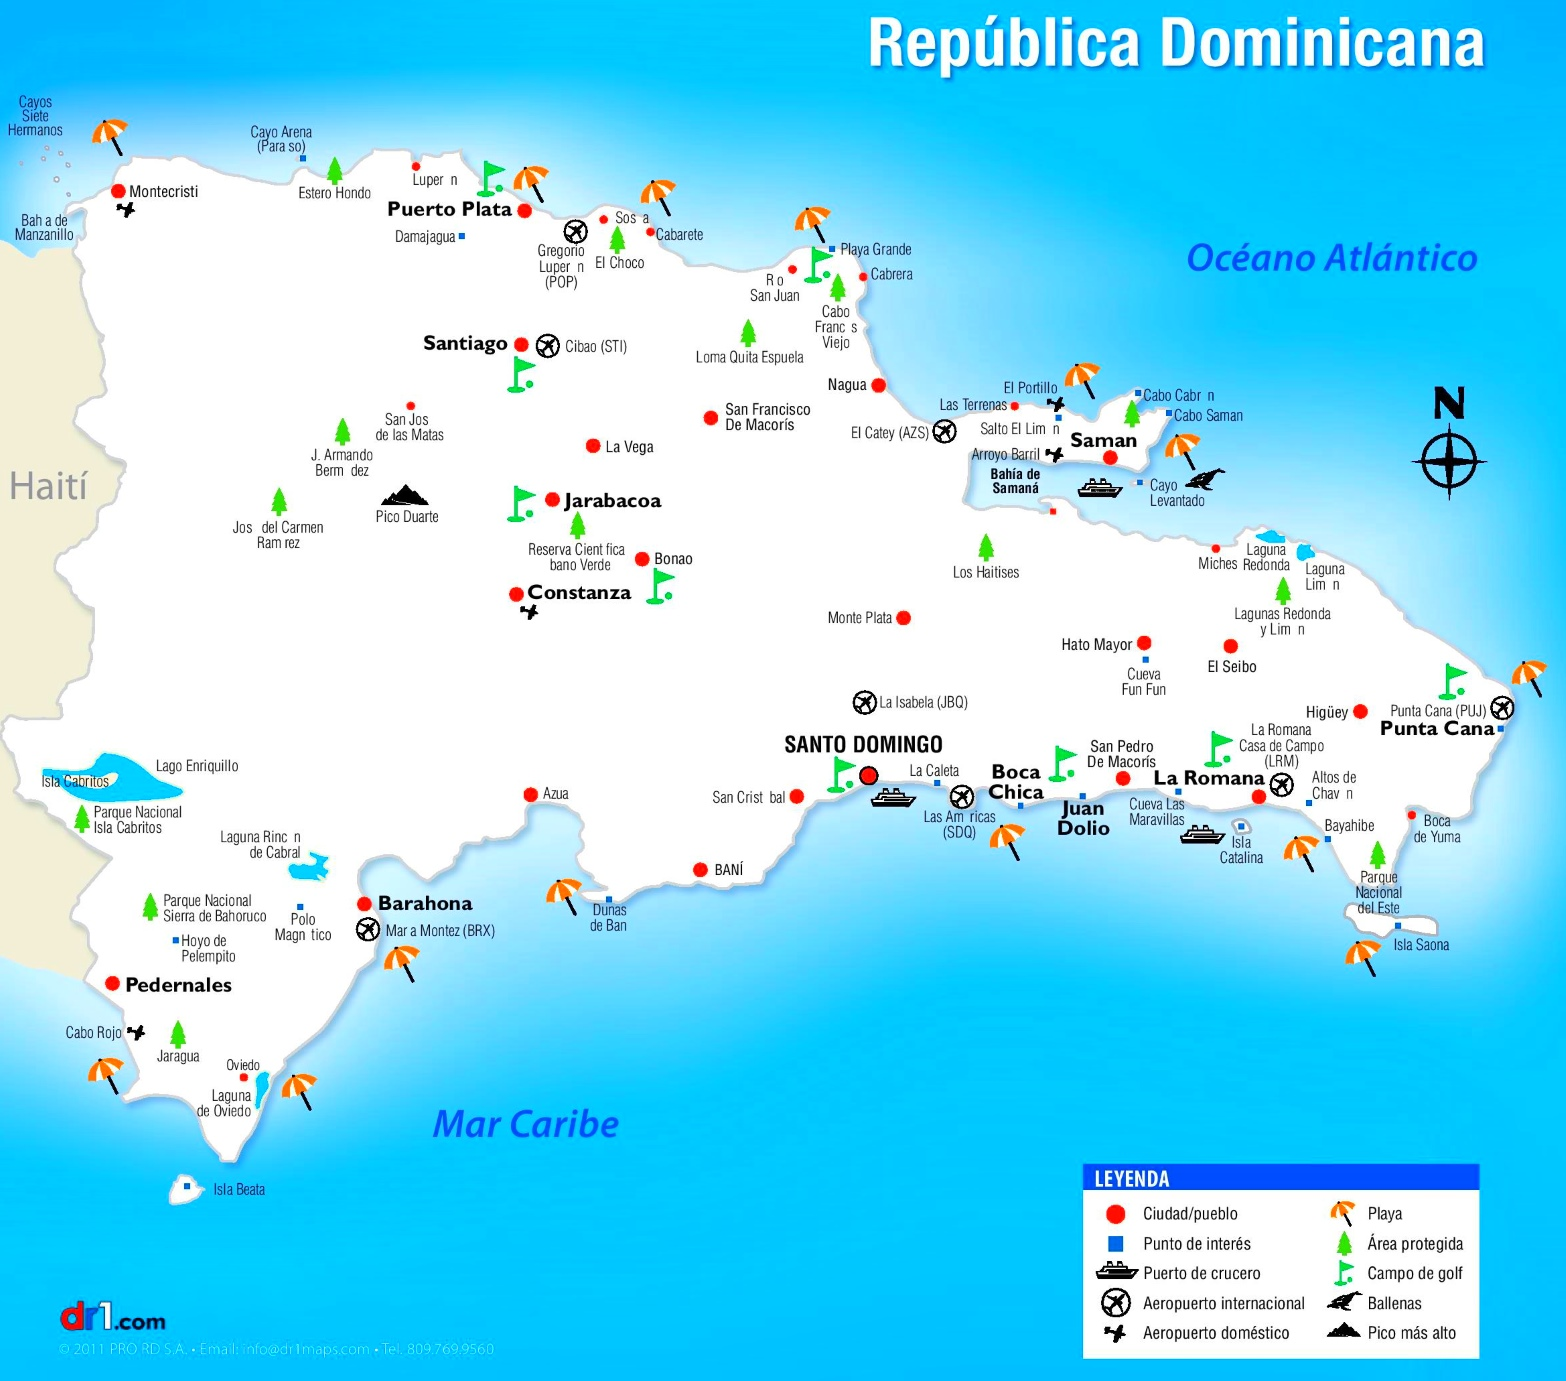 Dominican republic maps maps of dominican republic dominican republic sightseeing map publicscrutiny Choice Image